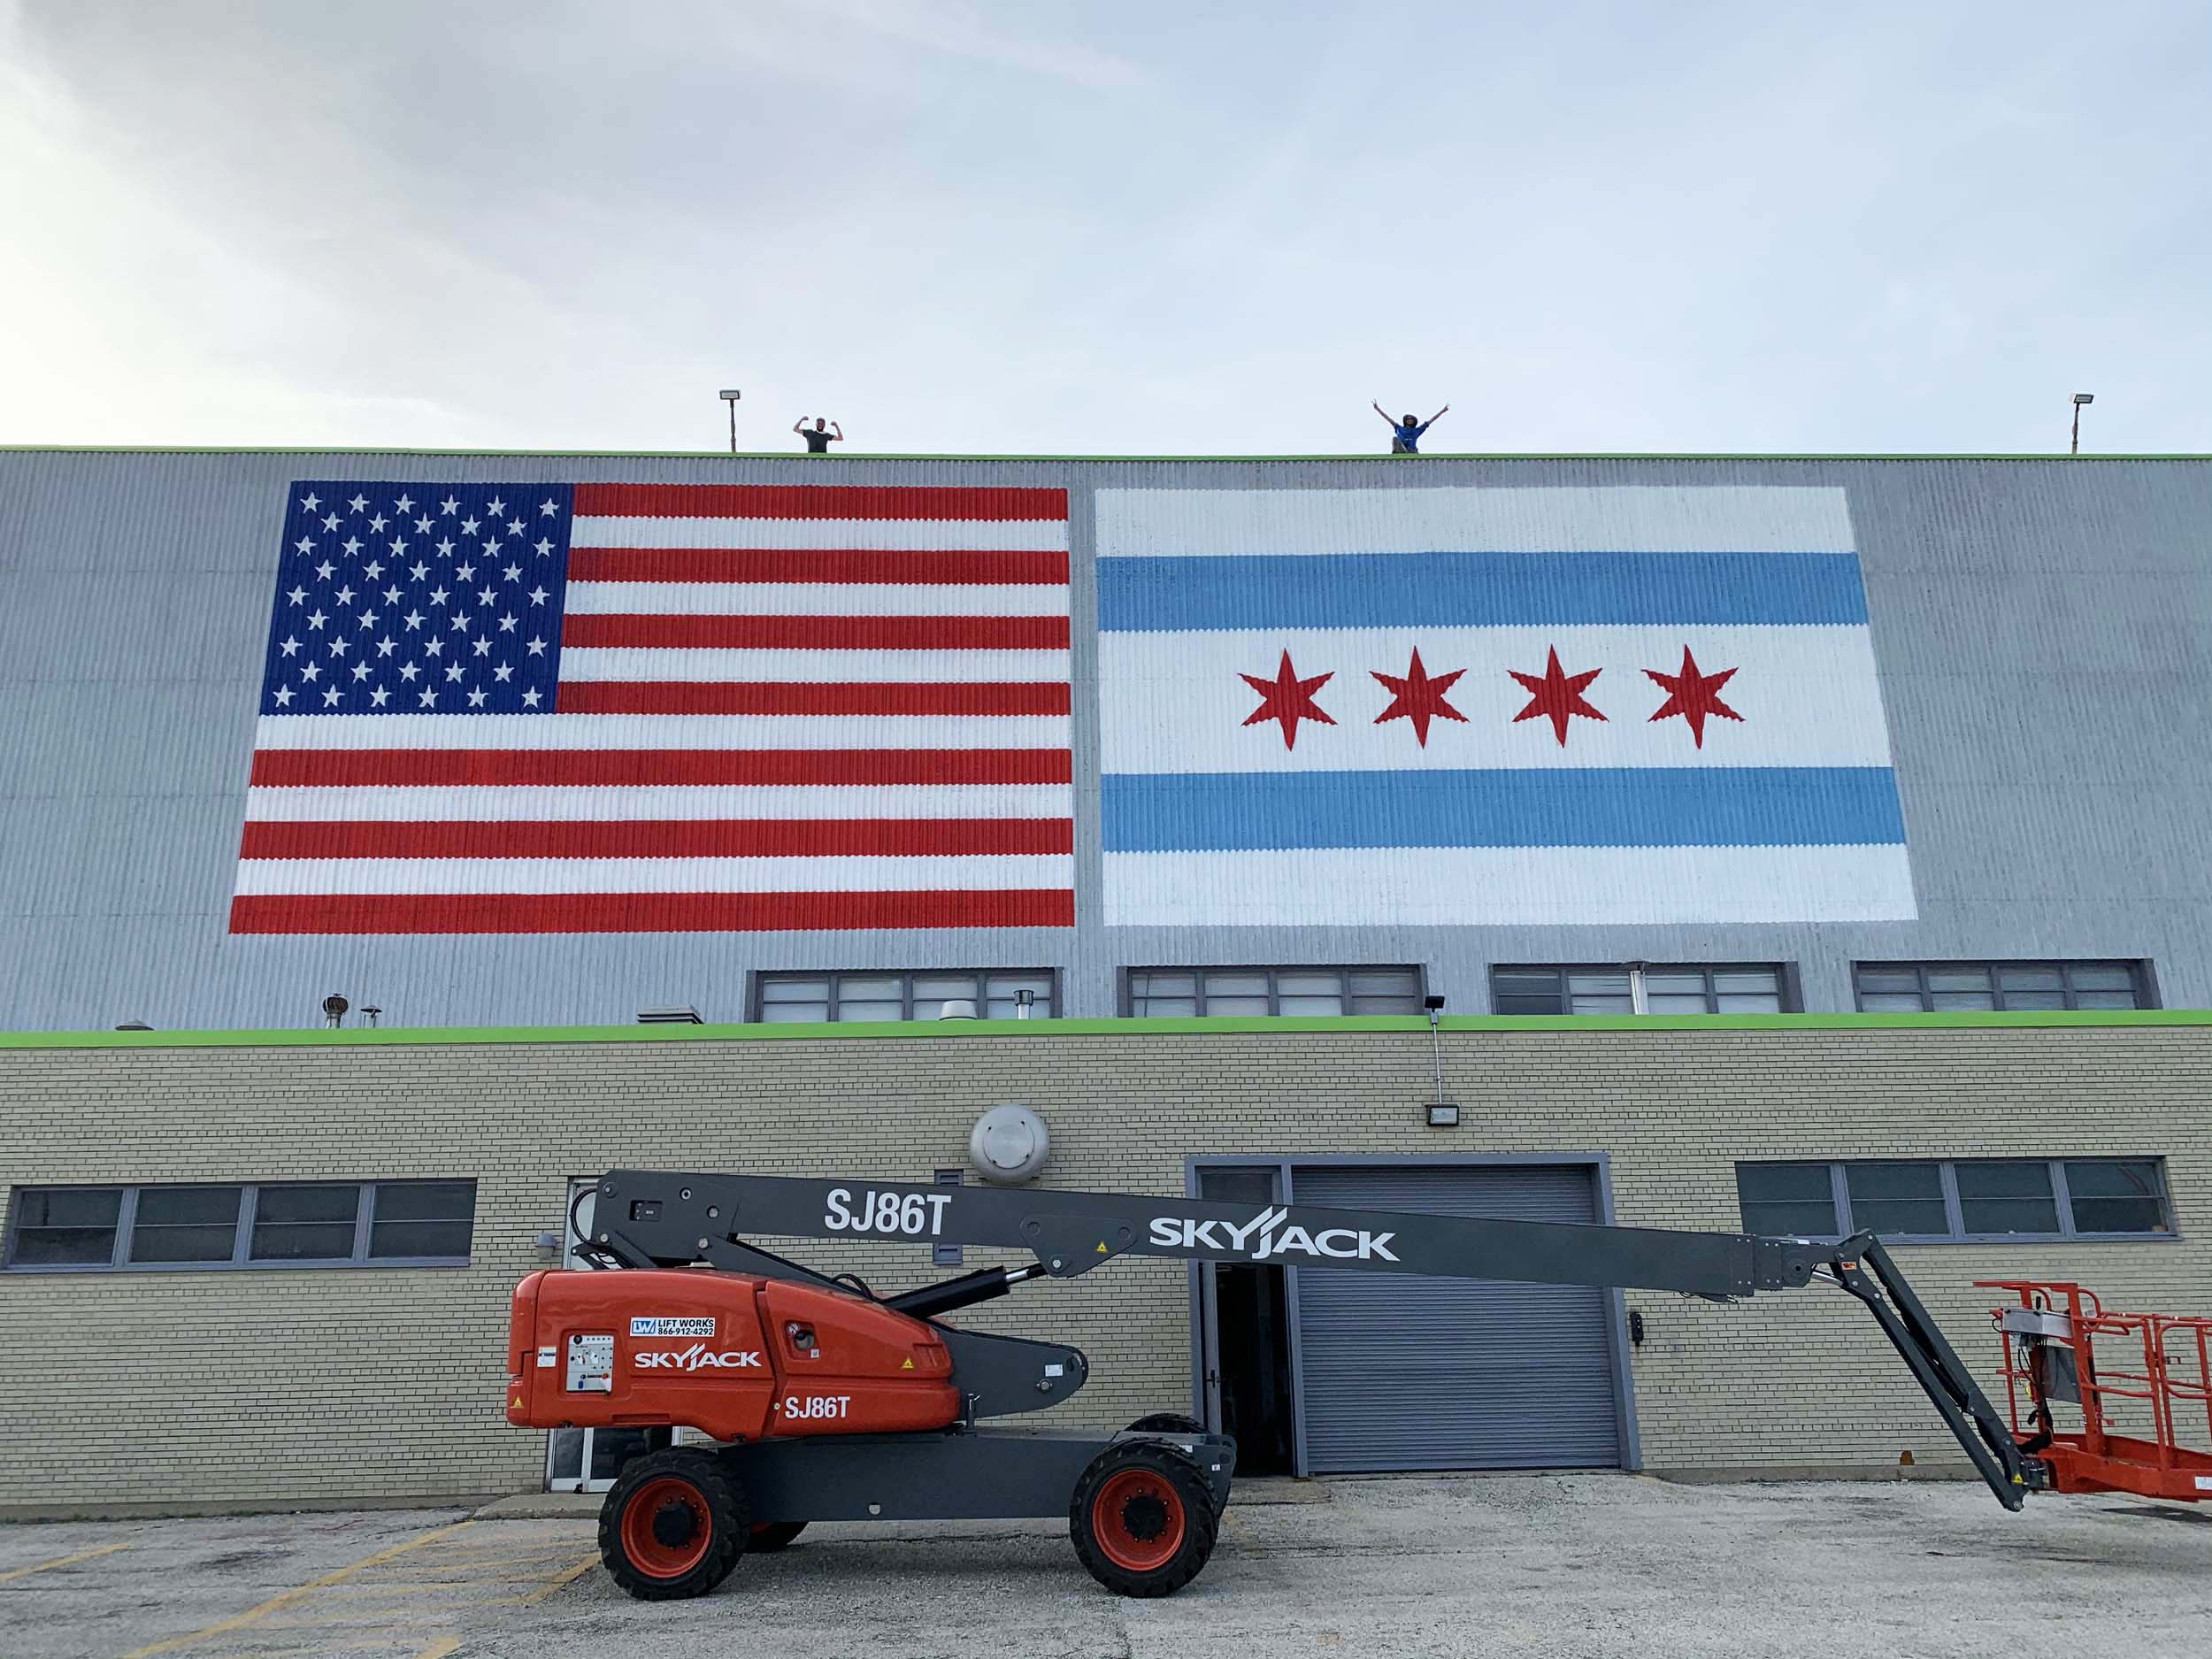 Flag Mural USA & Chicago at Airport